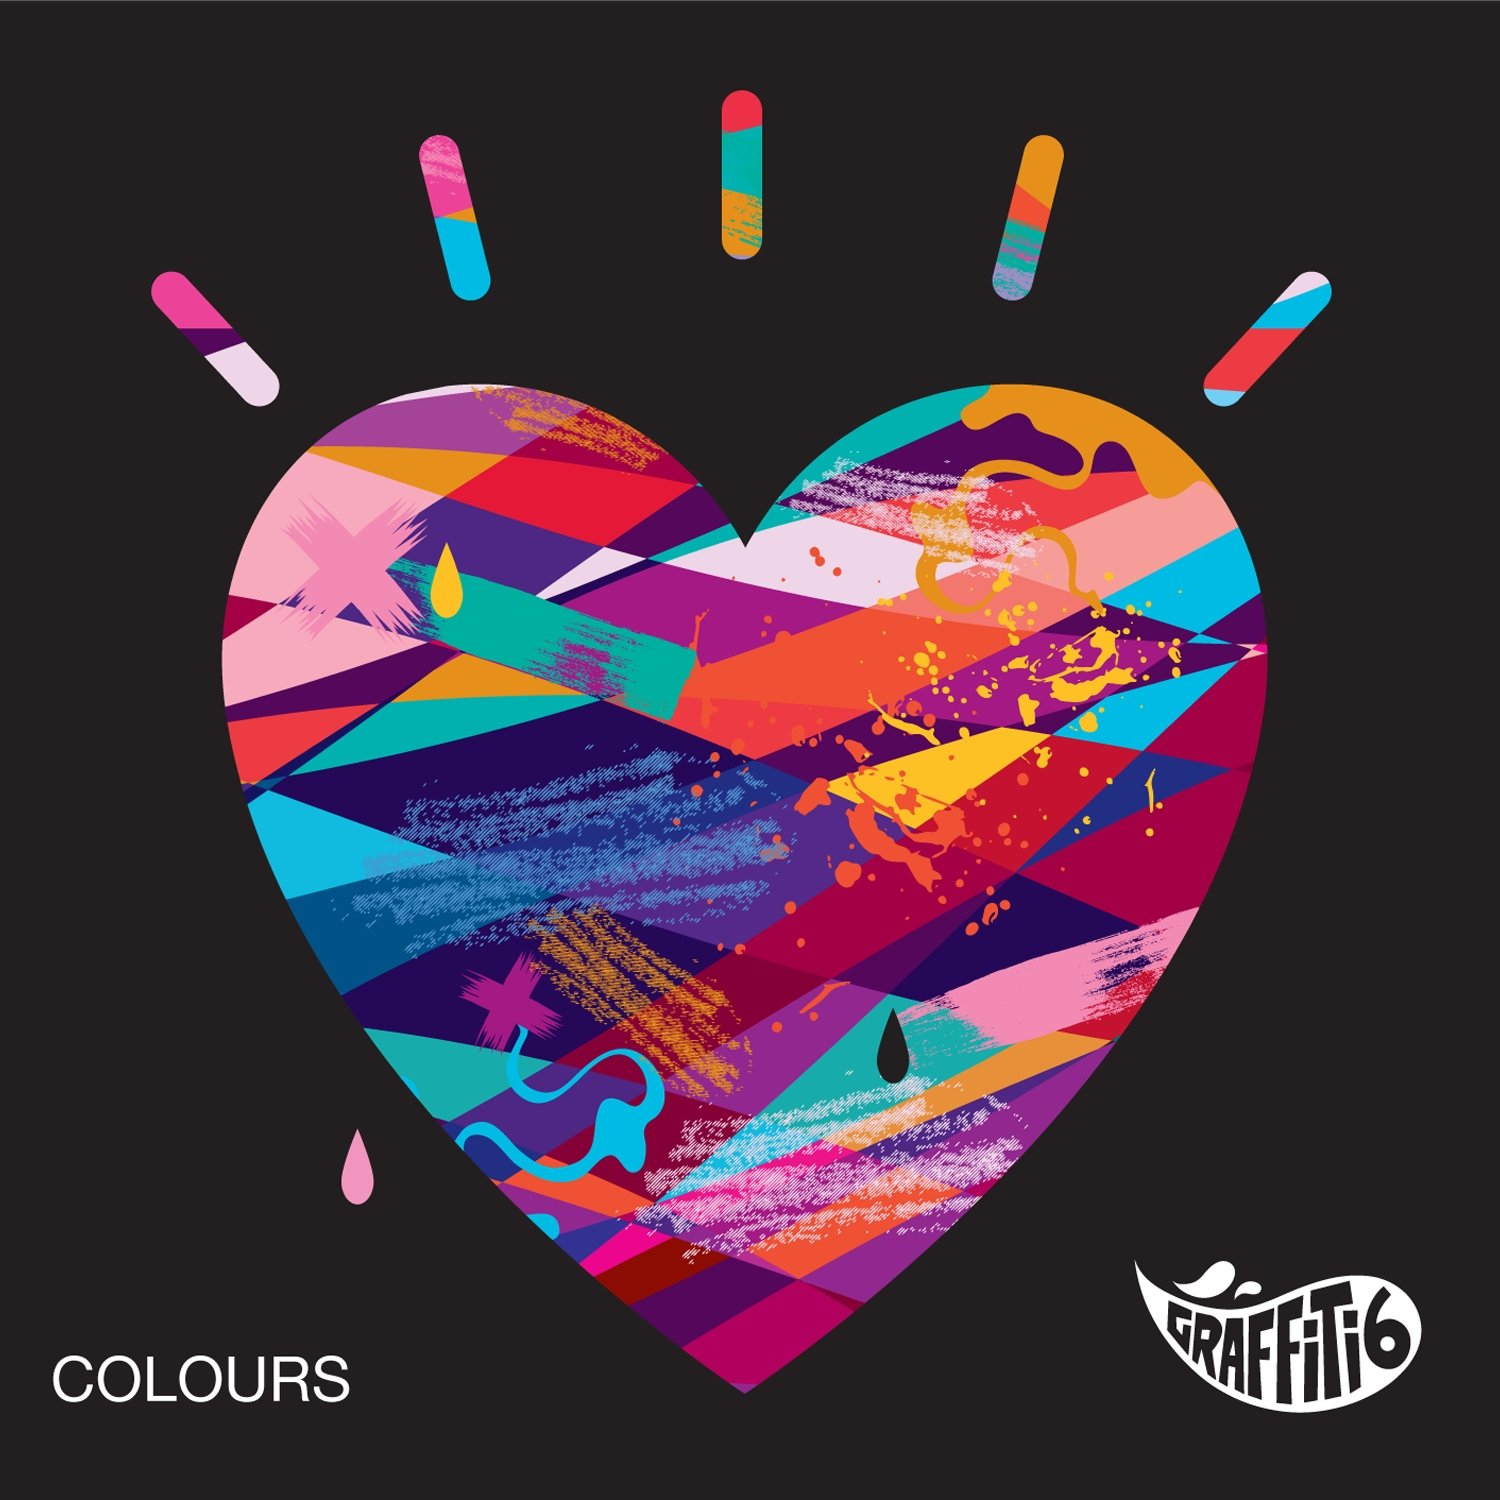 Graffiti6 colours amazon com music